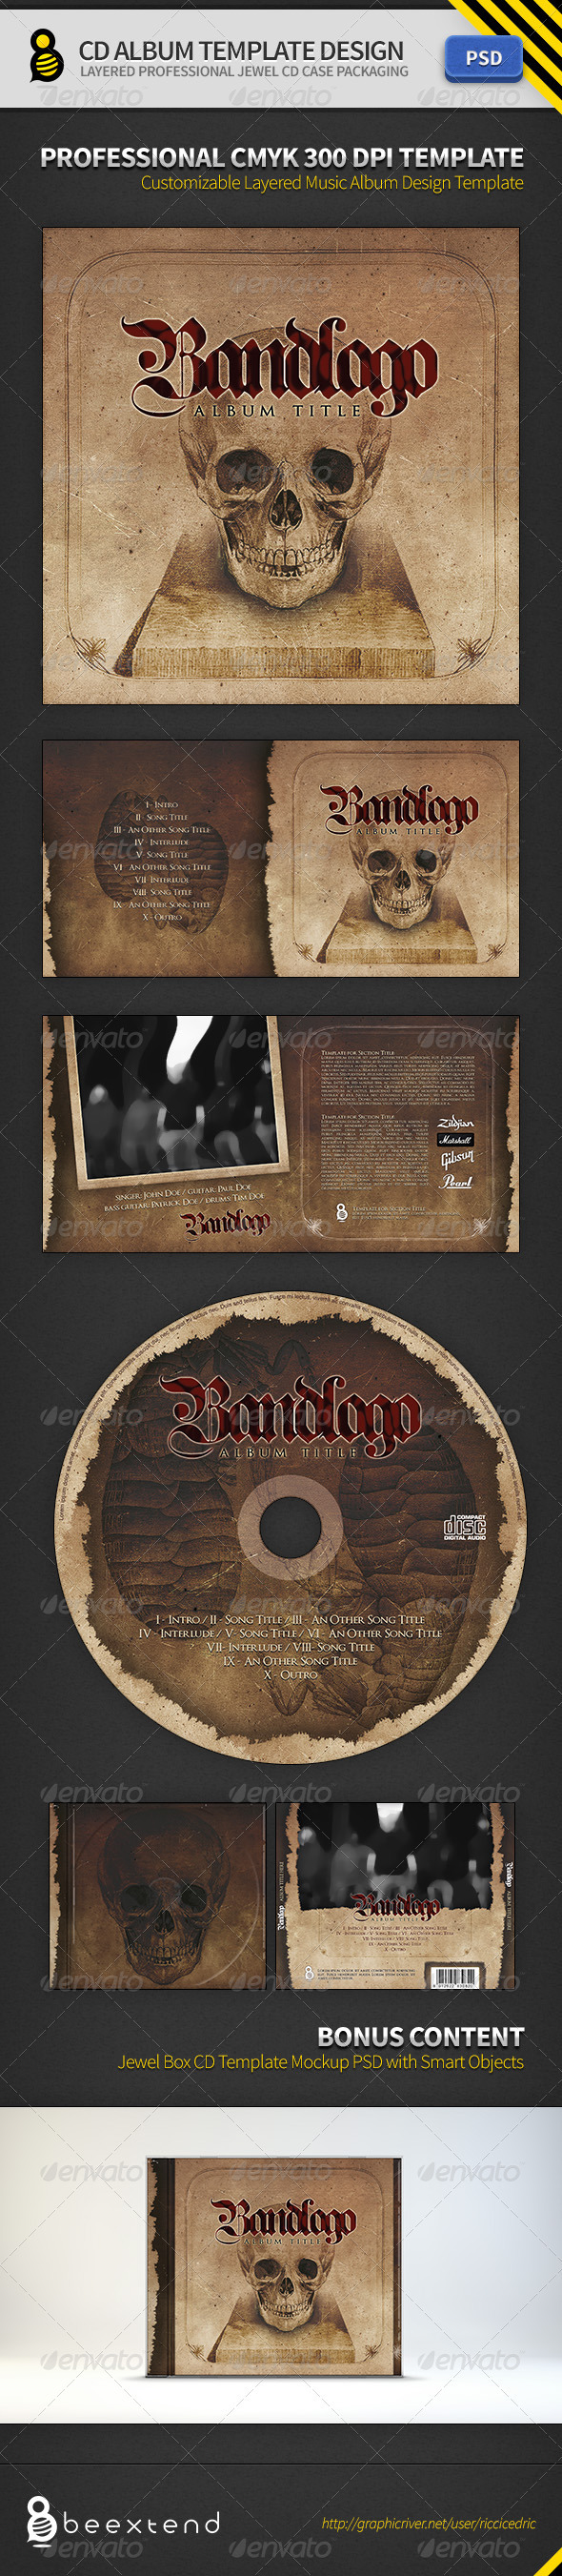 CD Album Template Design - CD & DVD Artwork Print Templates